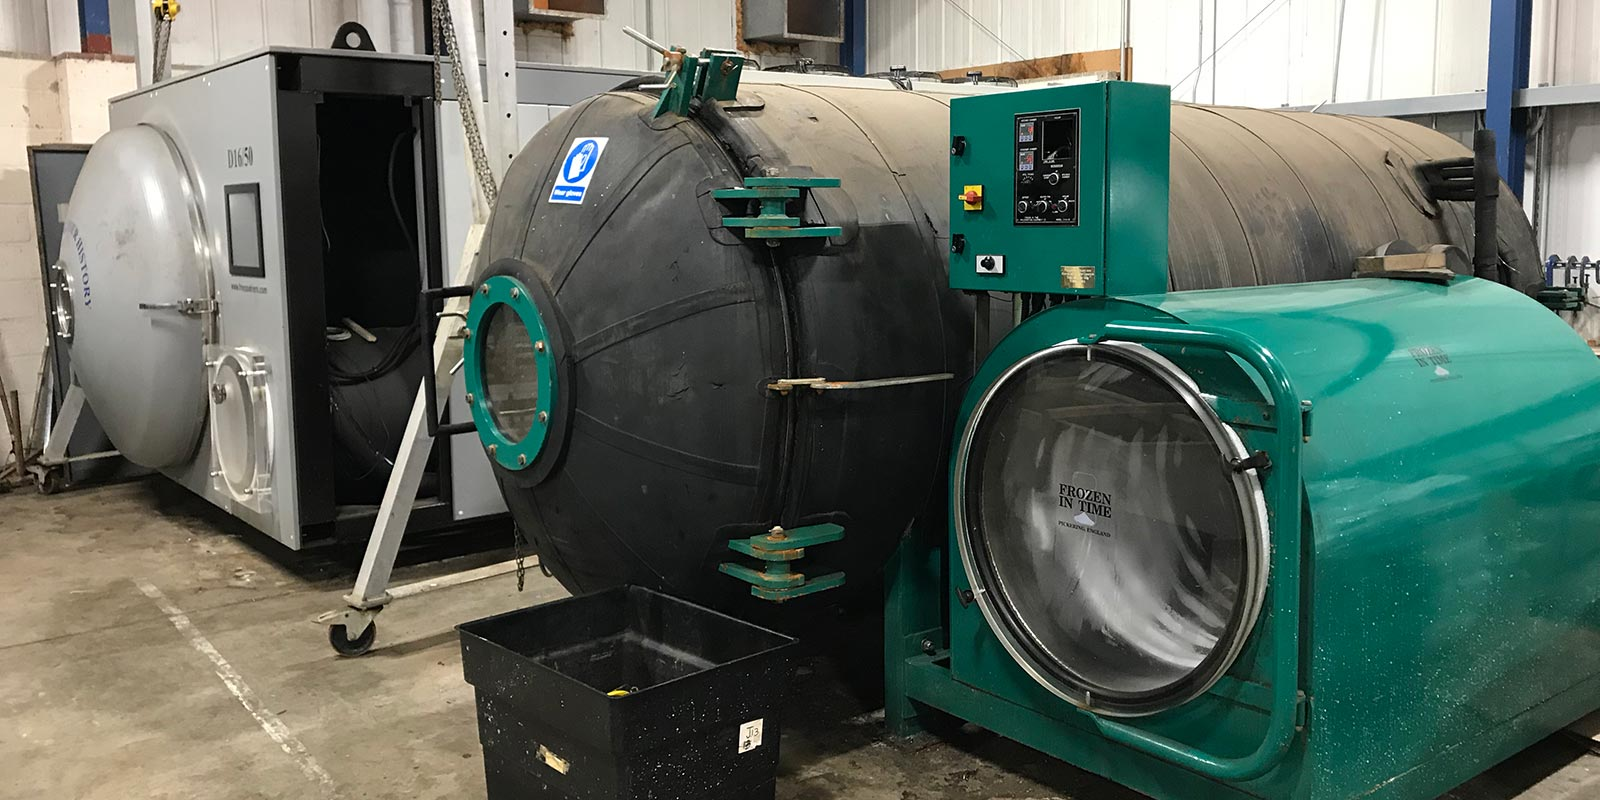 A photo of Freeze dryers